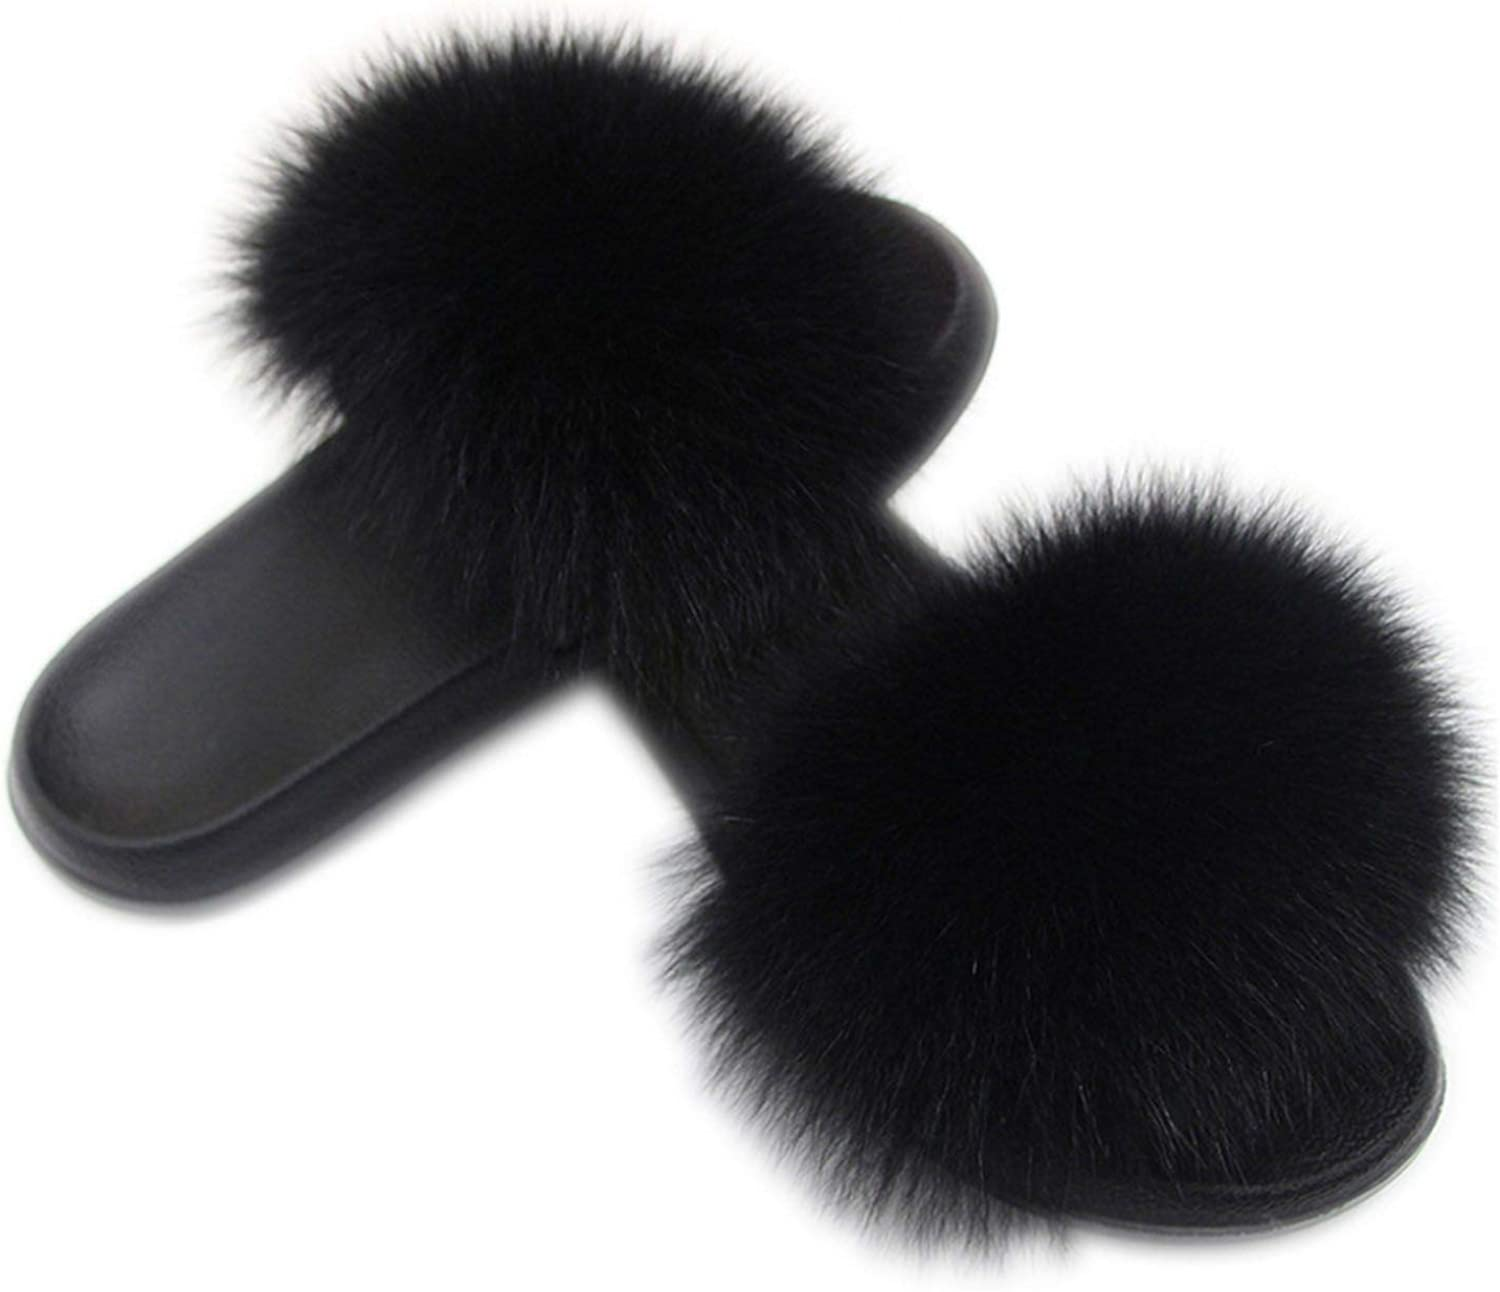 SmarketL High end Women's Fox Hair Slippers Winter Warm Furry Ladies Plush Fashion Indoor Solid Big Size Wholesale 36-45